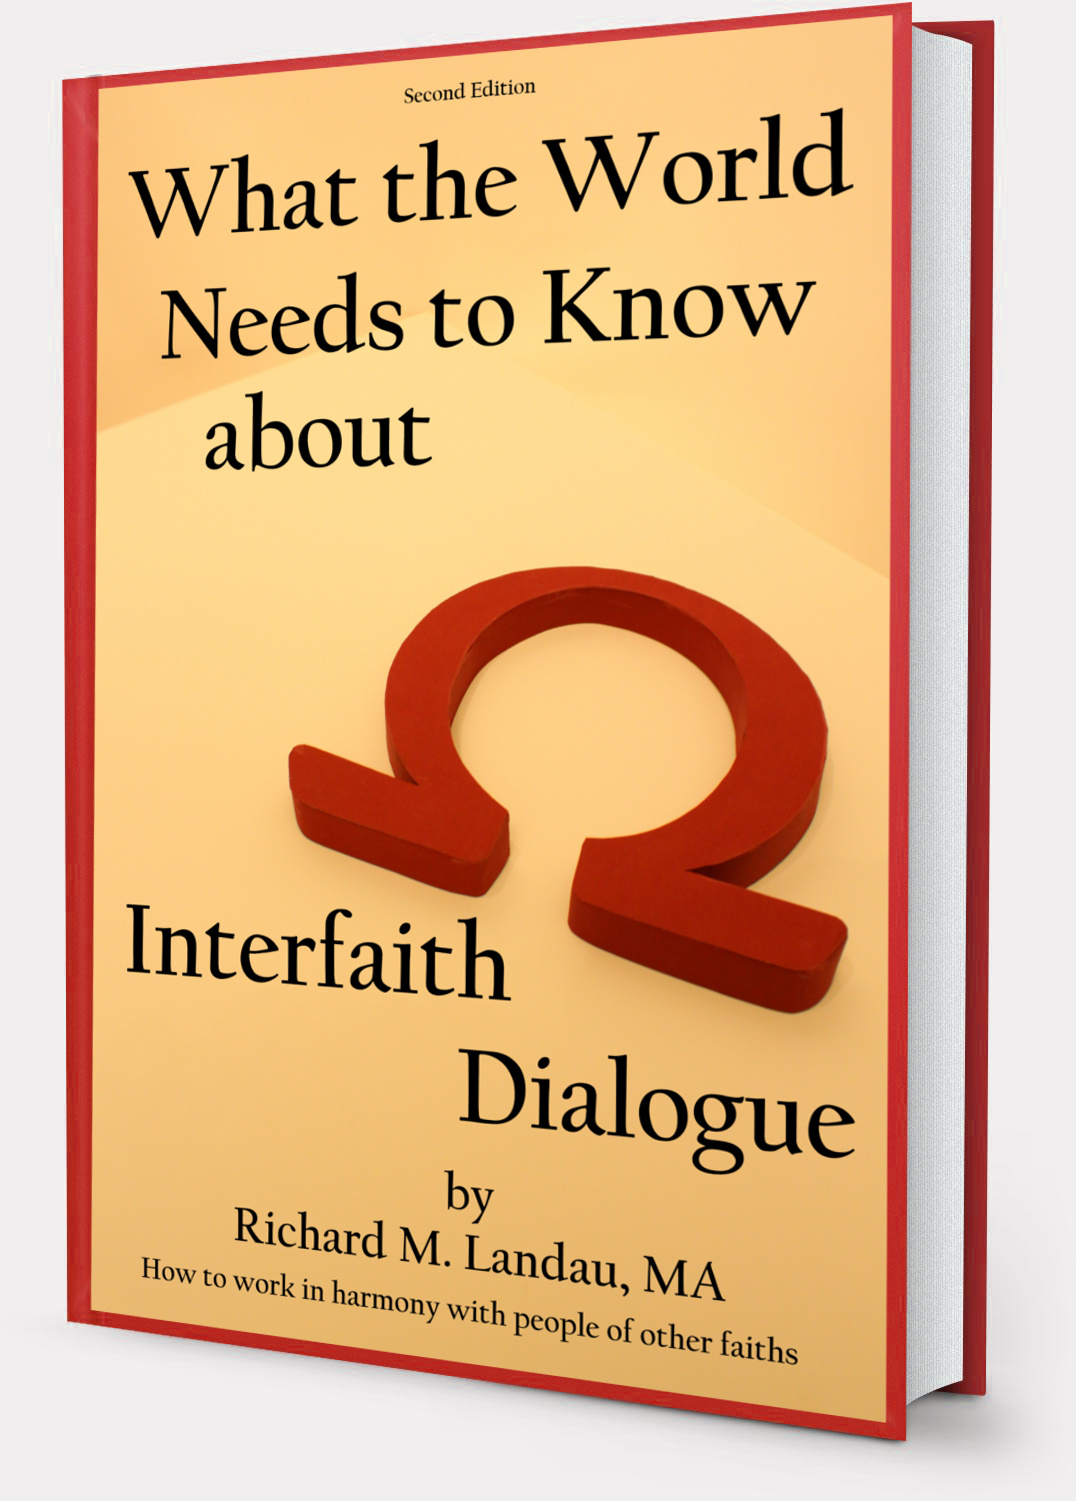 Interfaith dialogeue help?